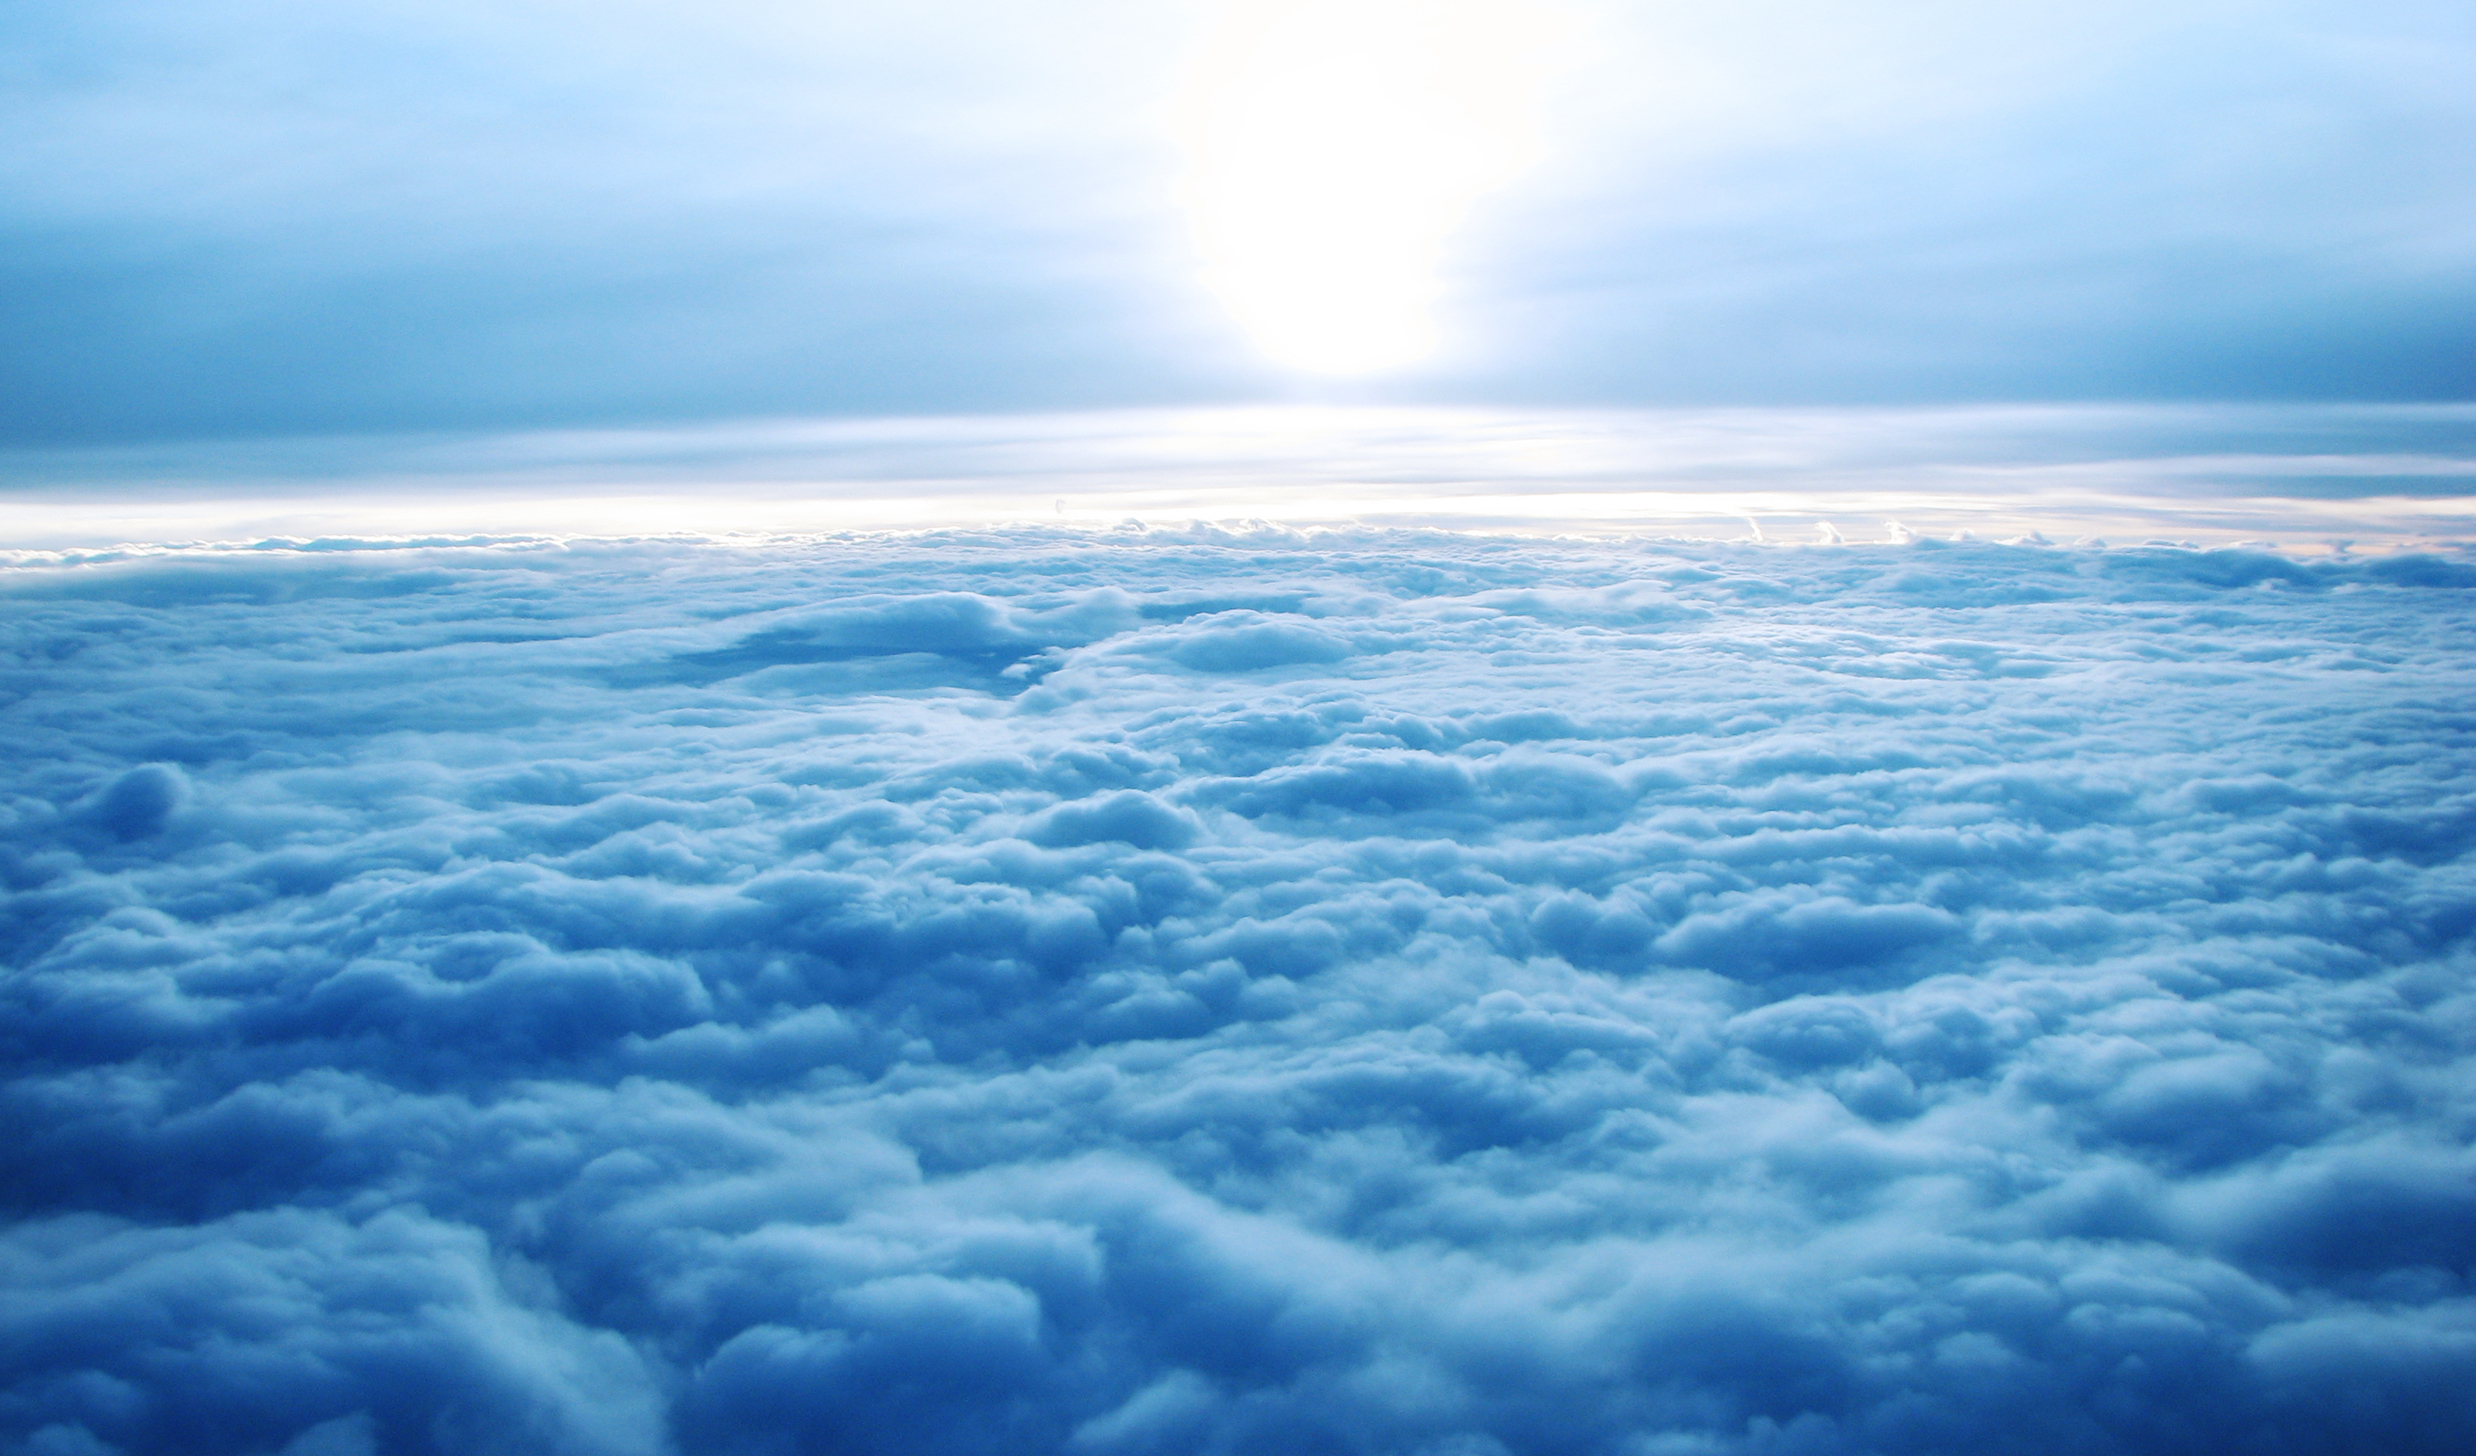 clouds wallpaper 4k